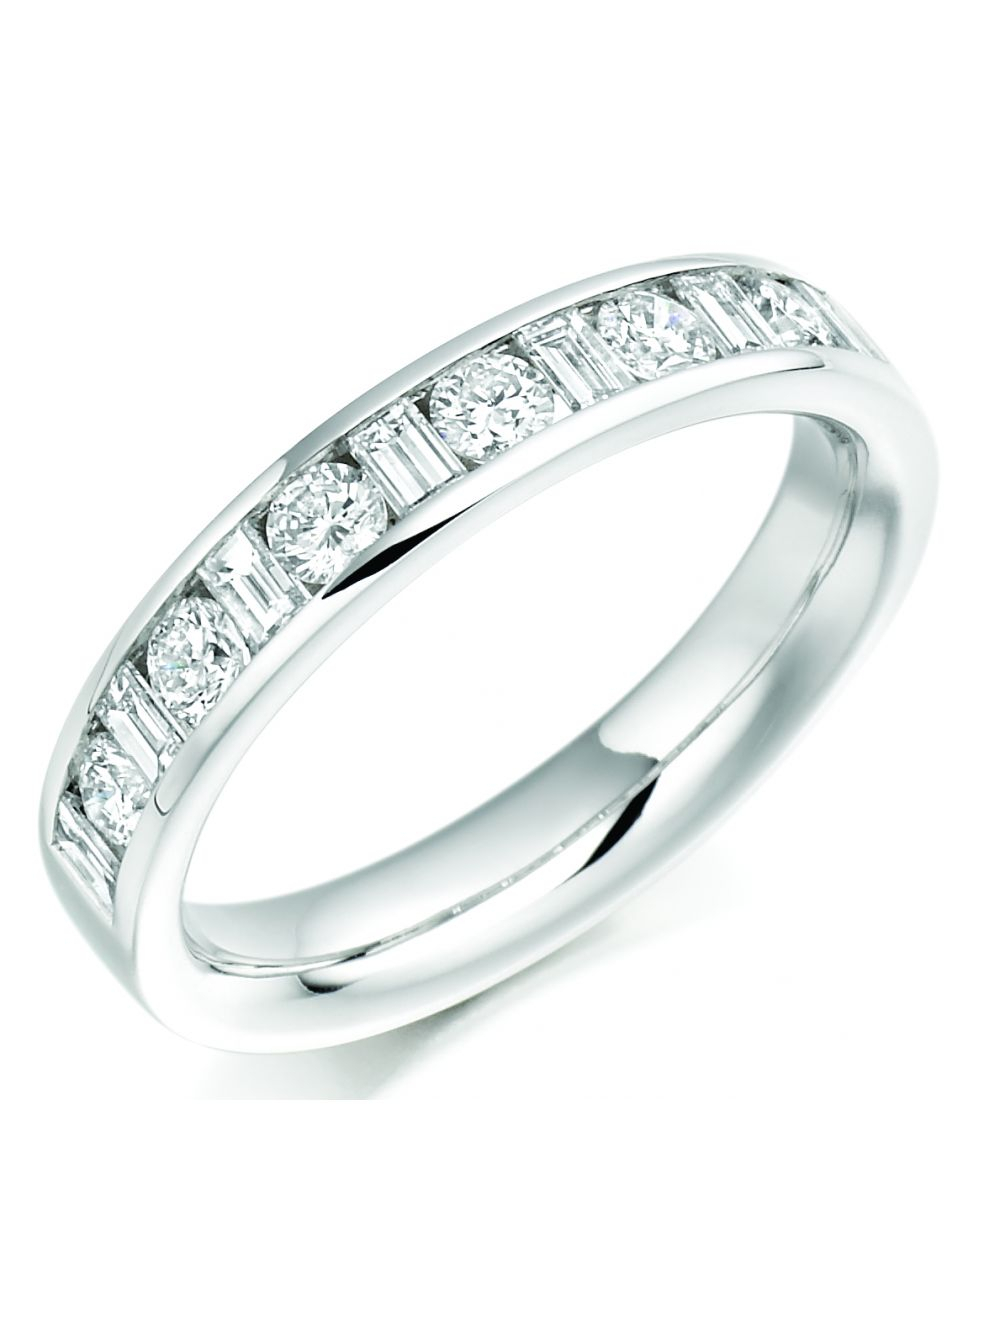 18Ct White Gold Round Brilliant & Baguette Diamond Eternity Ring Within 2017 Channel Set Round Brilliant And Baguette Cut Diamond Wedding Bands (View 2 of 25)